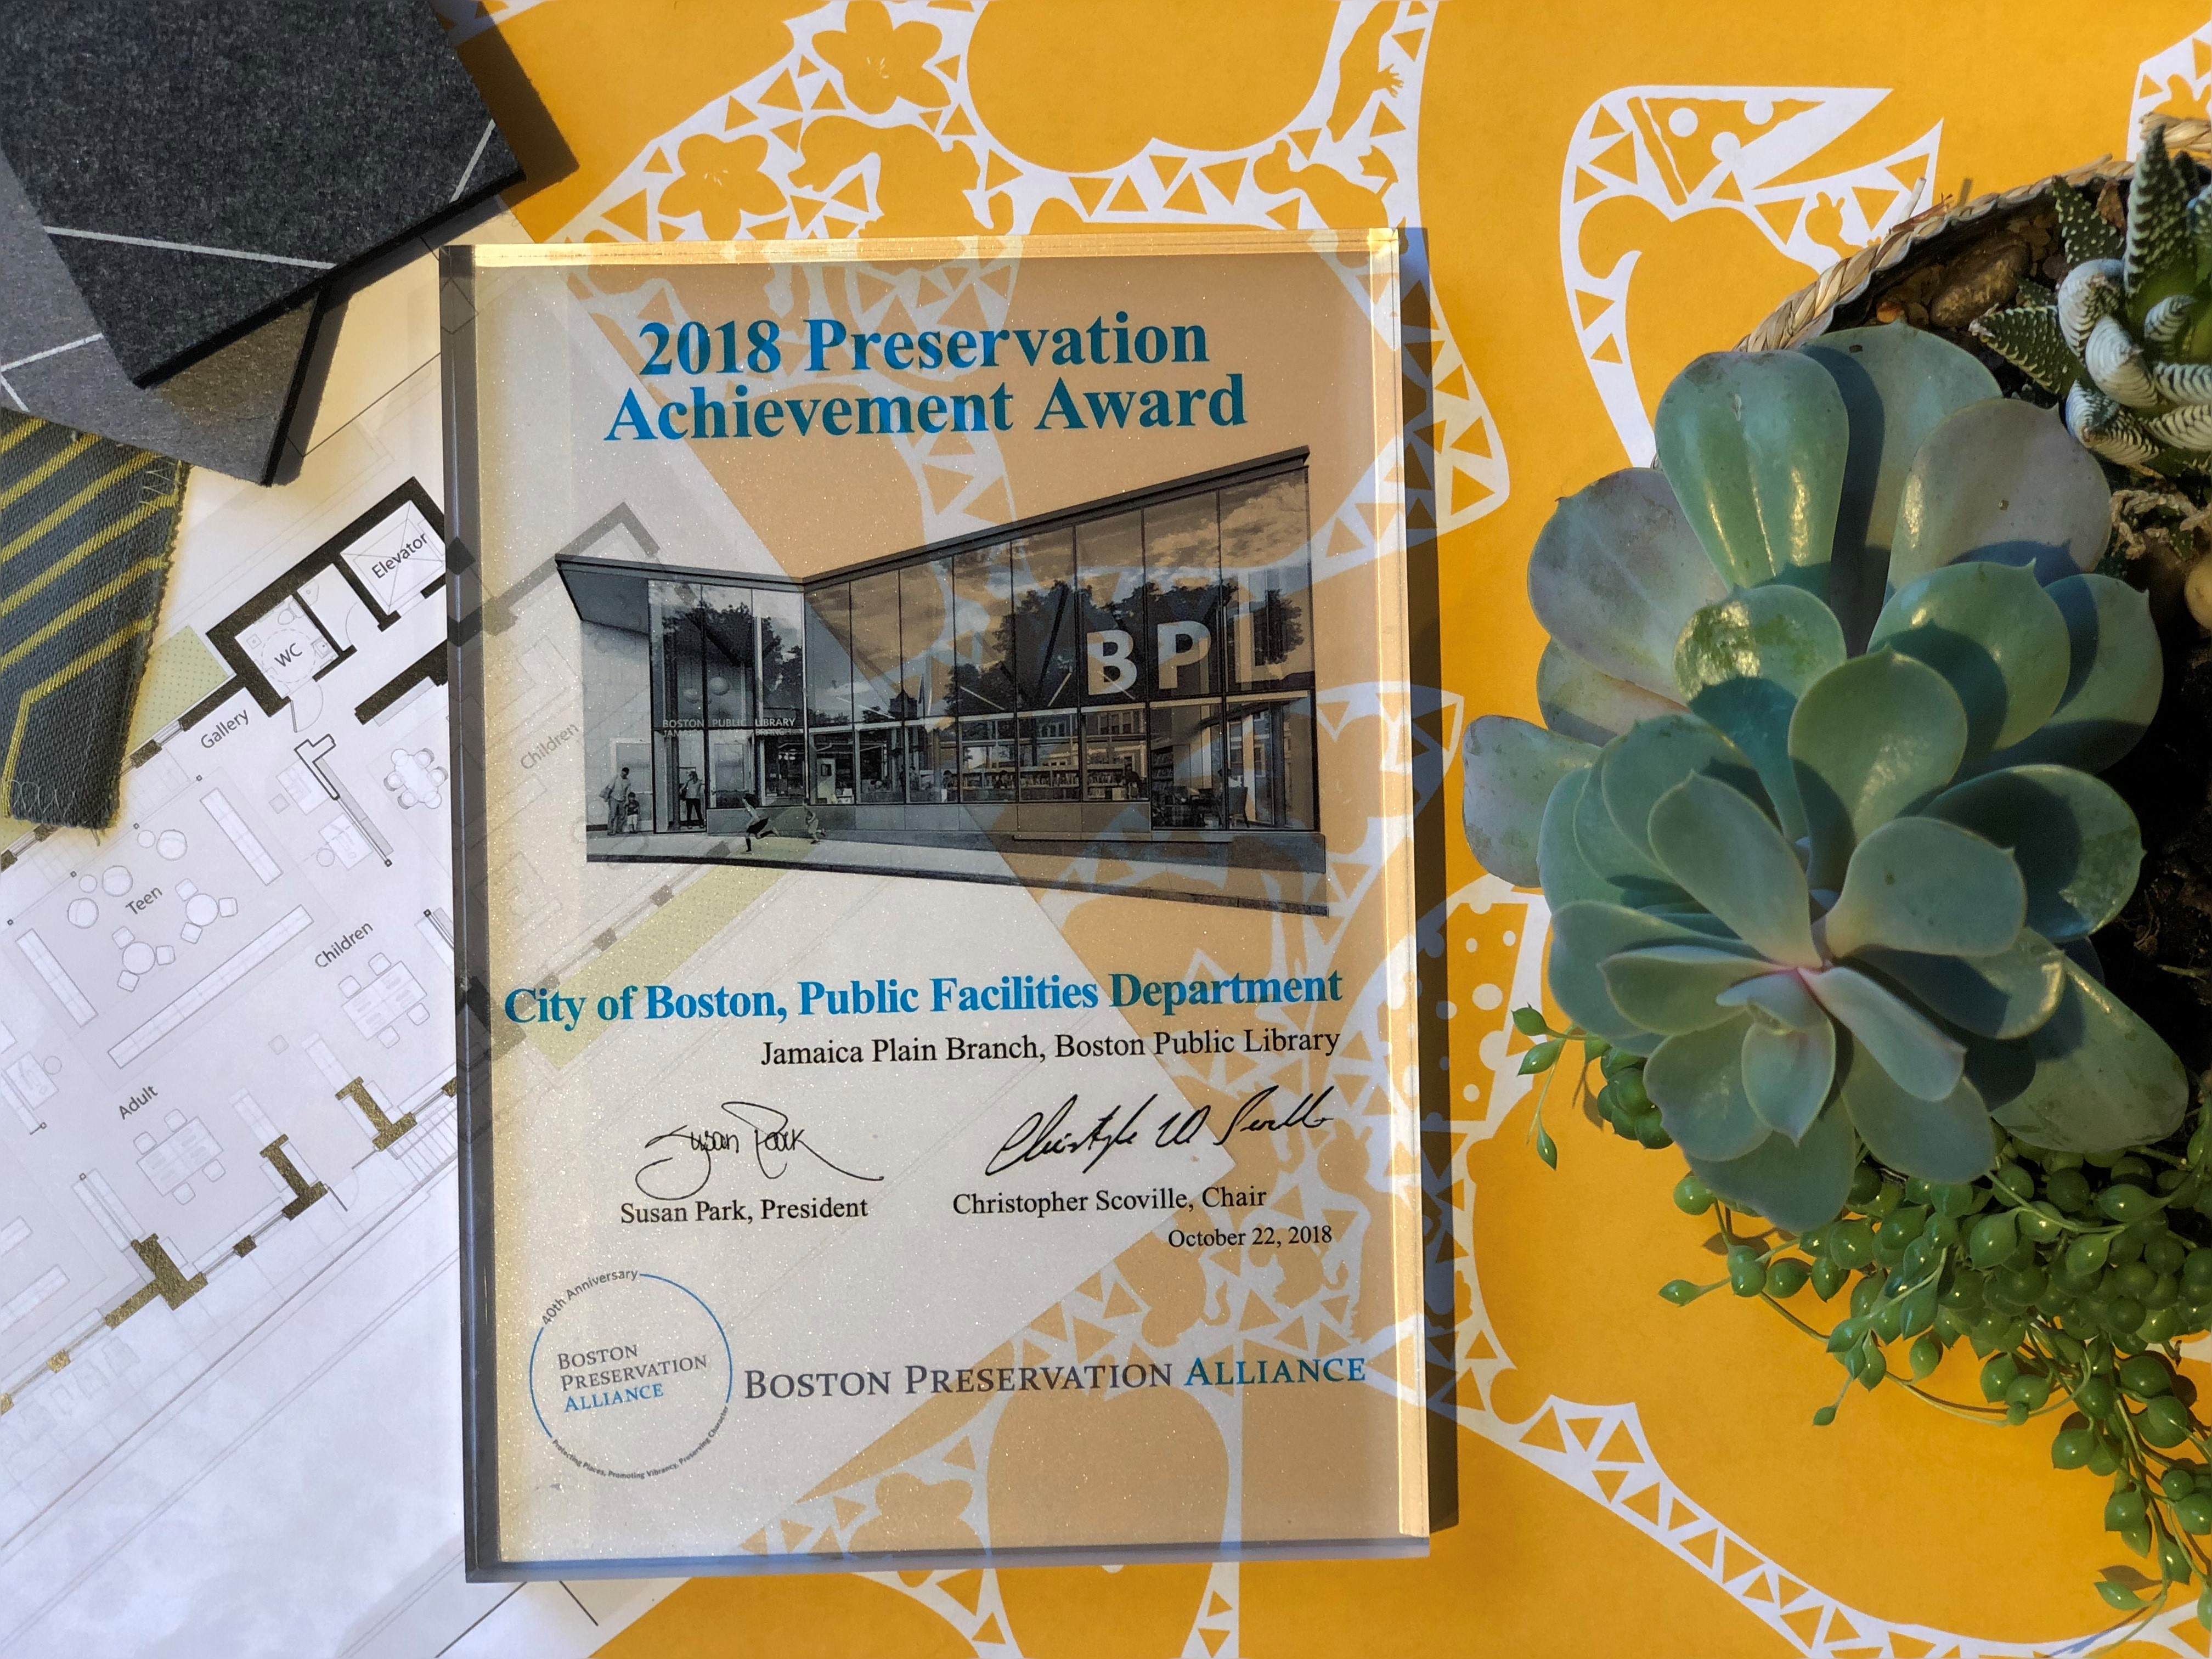 Boston Preservation Alliance 2018 Awards and 40th Anniversary Celebration